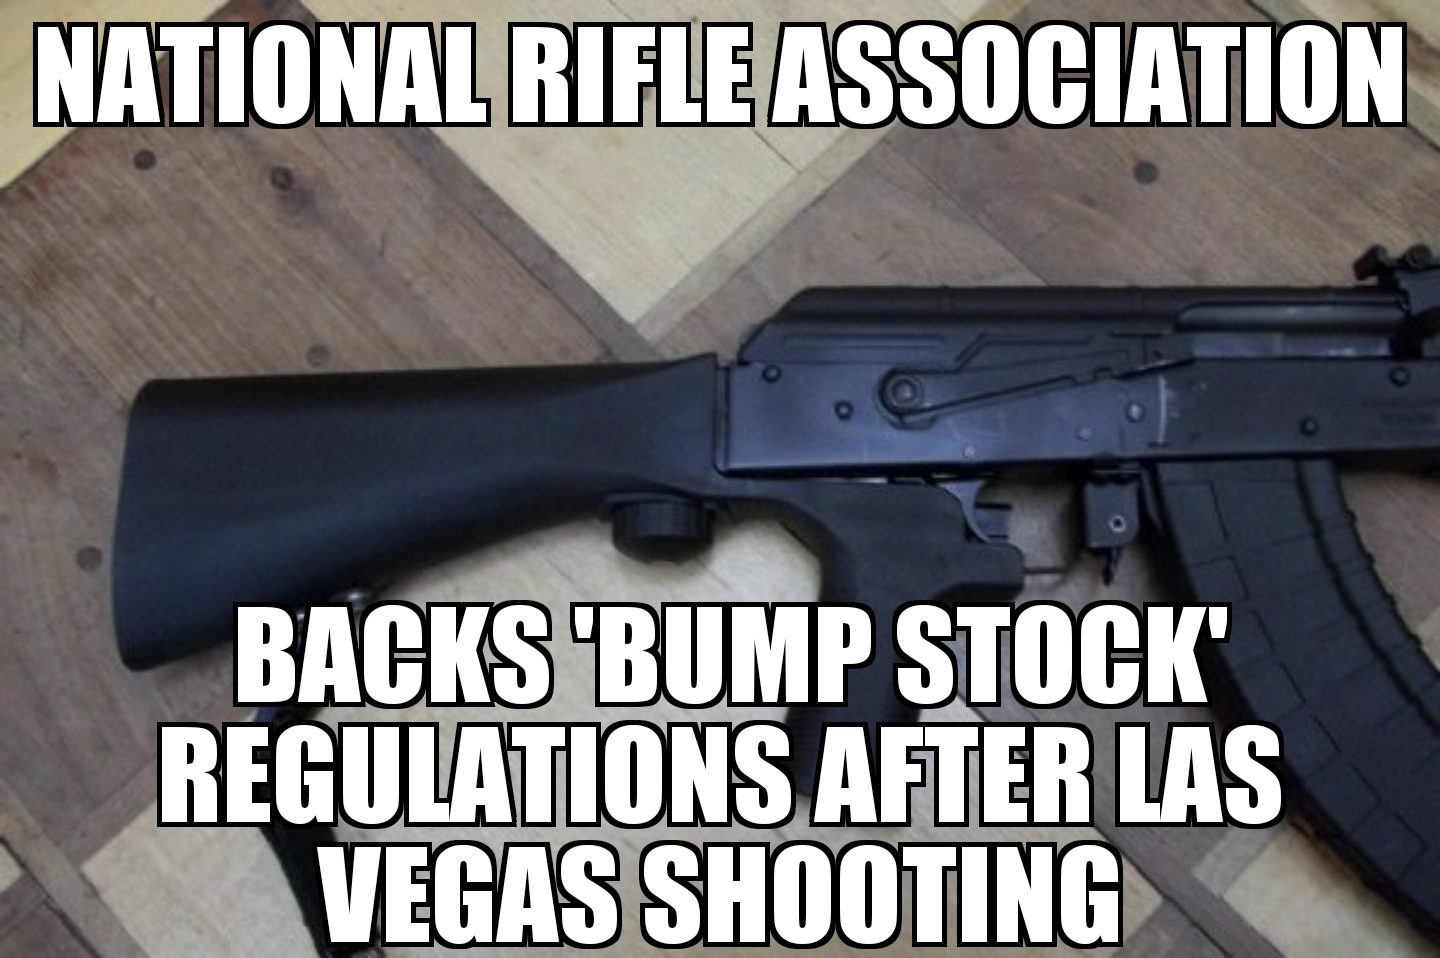 meme2017 10 06 10 19 17 nra backs 'bump stock' regulations memenews